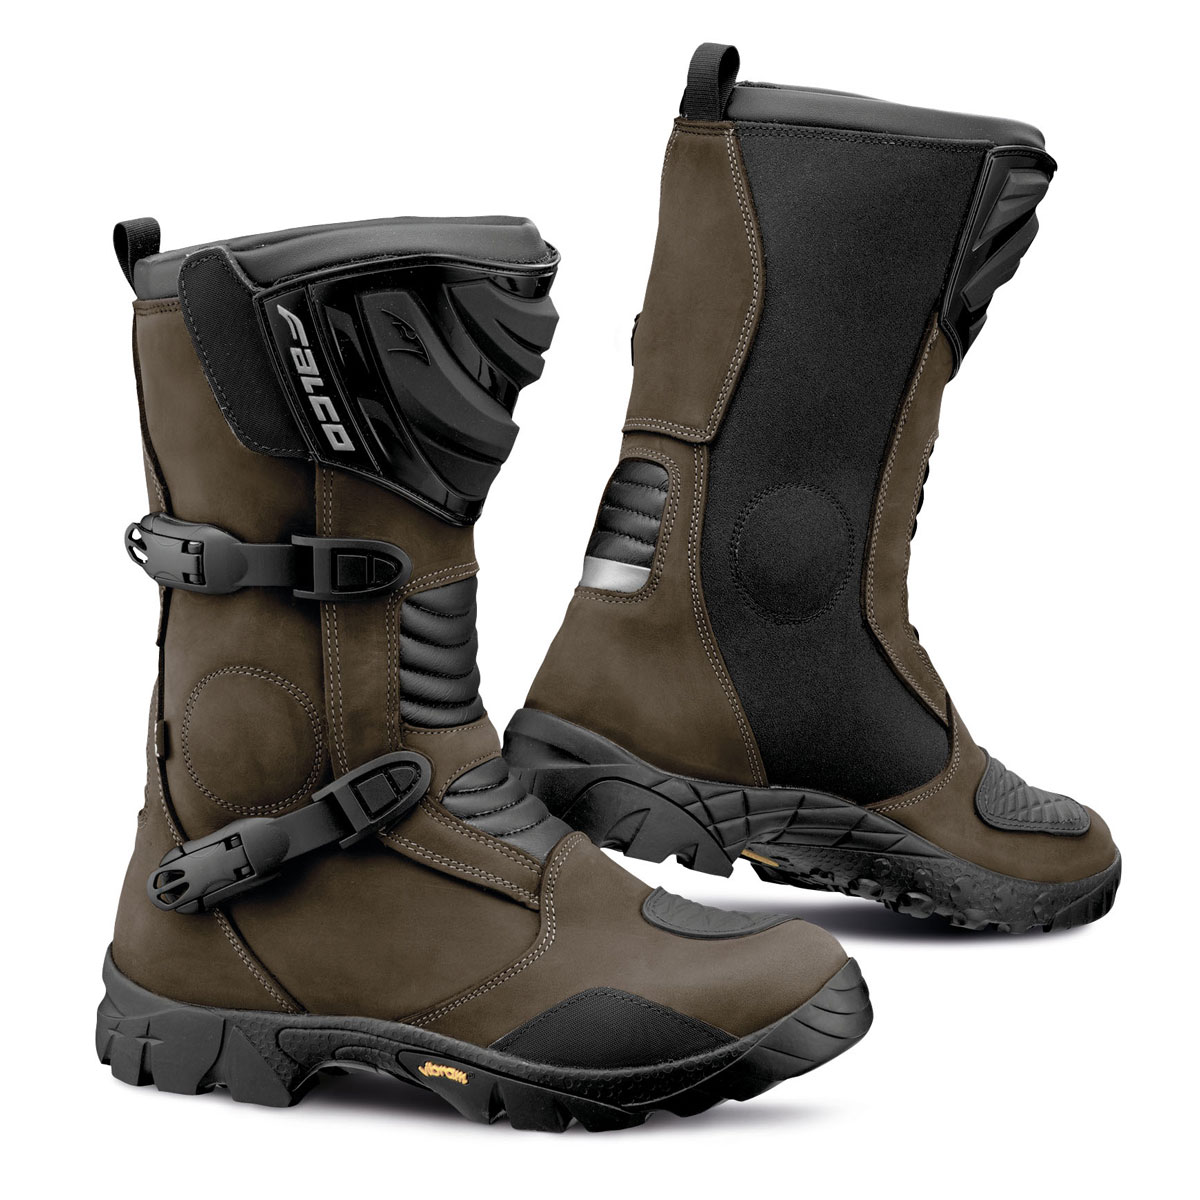 MIXTO 2 Adventure Motorcycle Boots